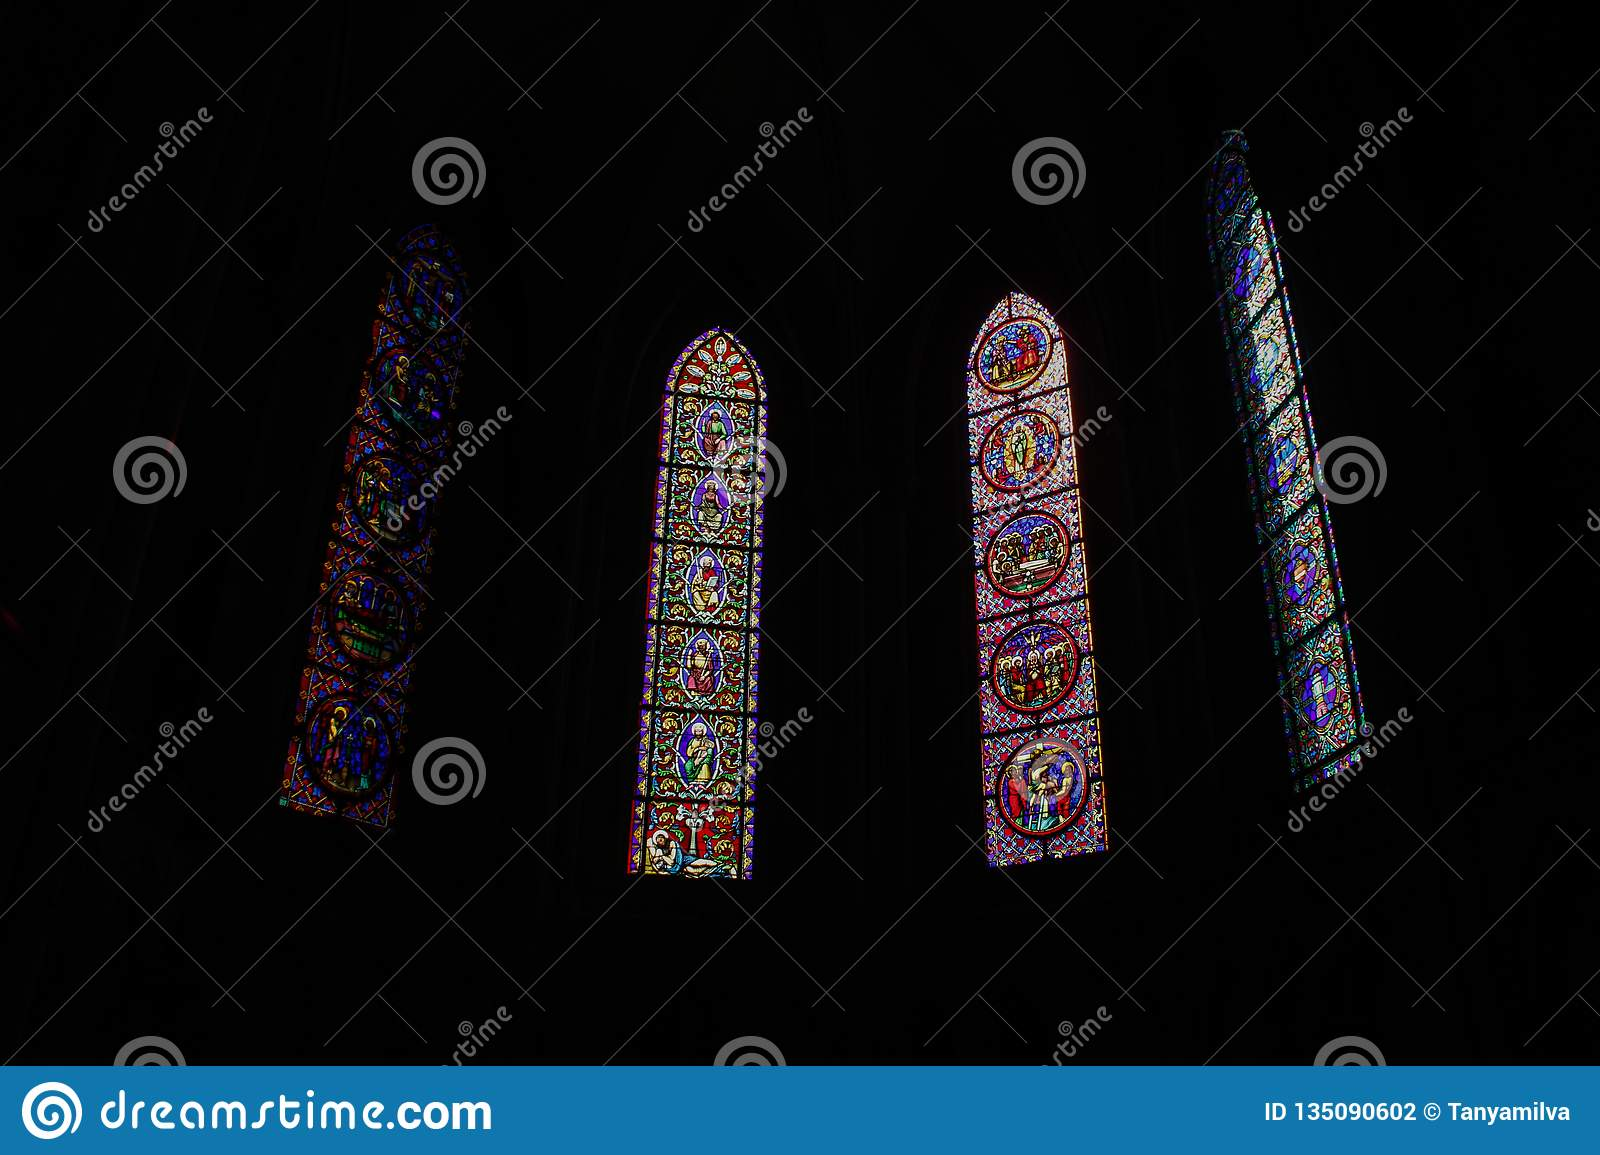 Beautiful multi-colored stained glass windows in the main Gothic cathedral of Rouen North Dame